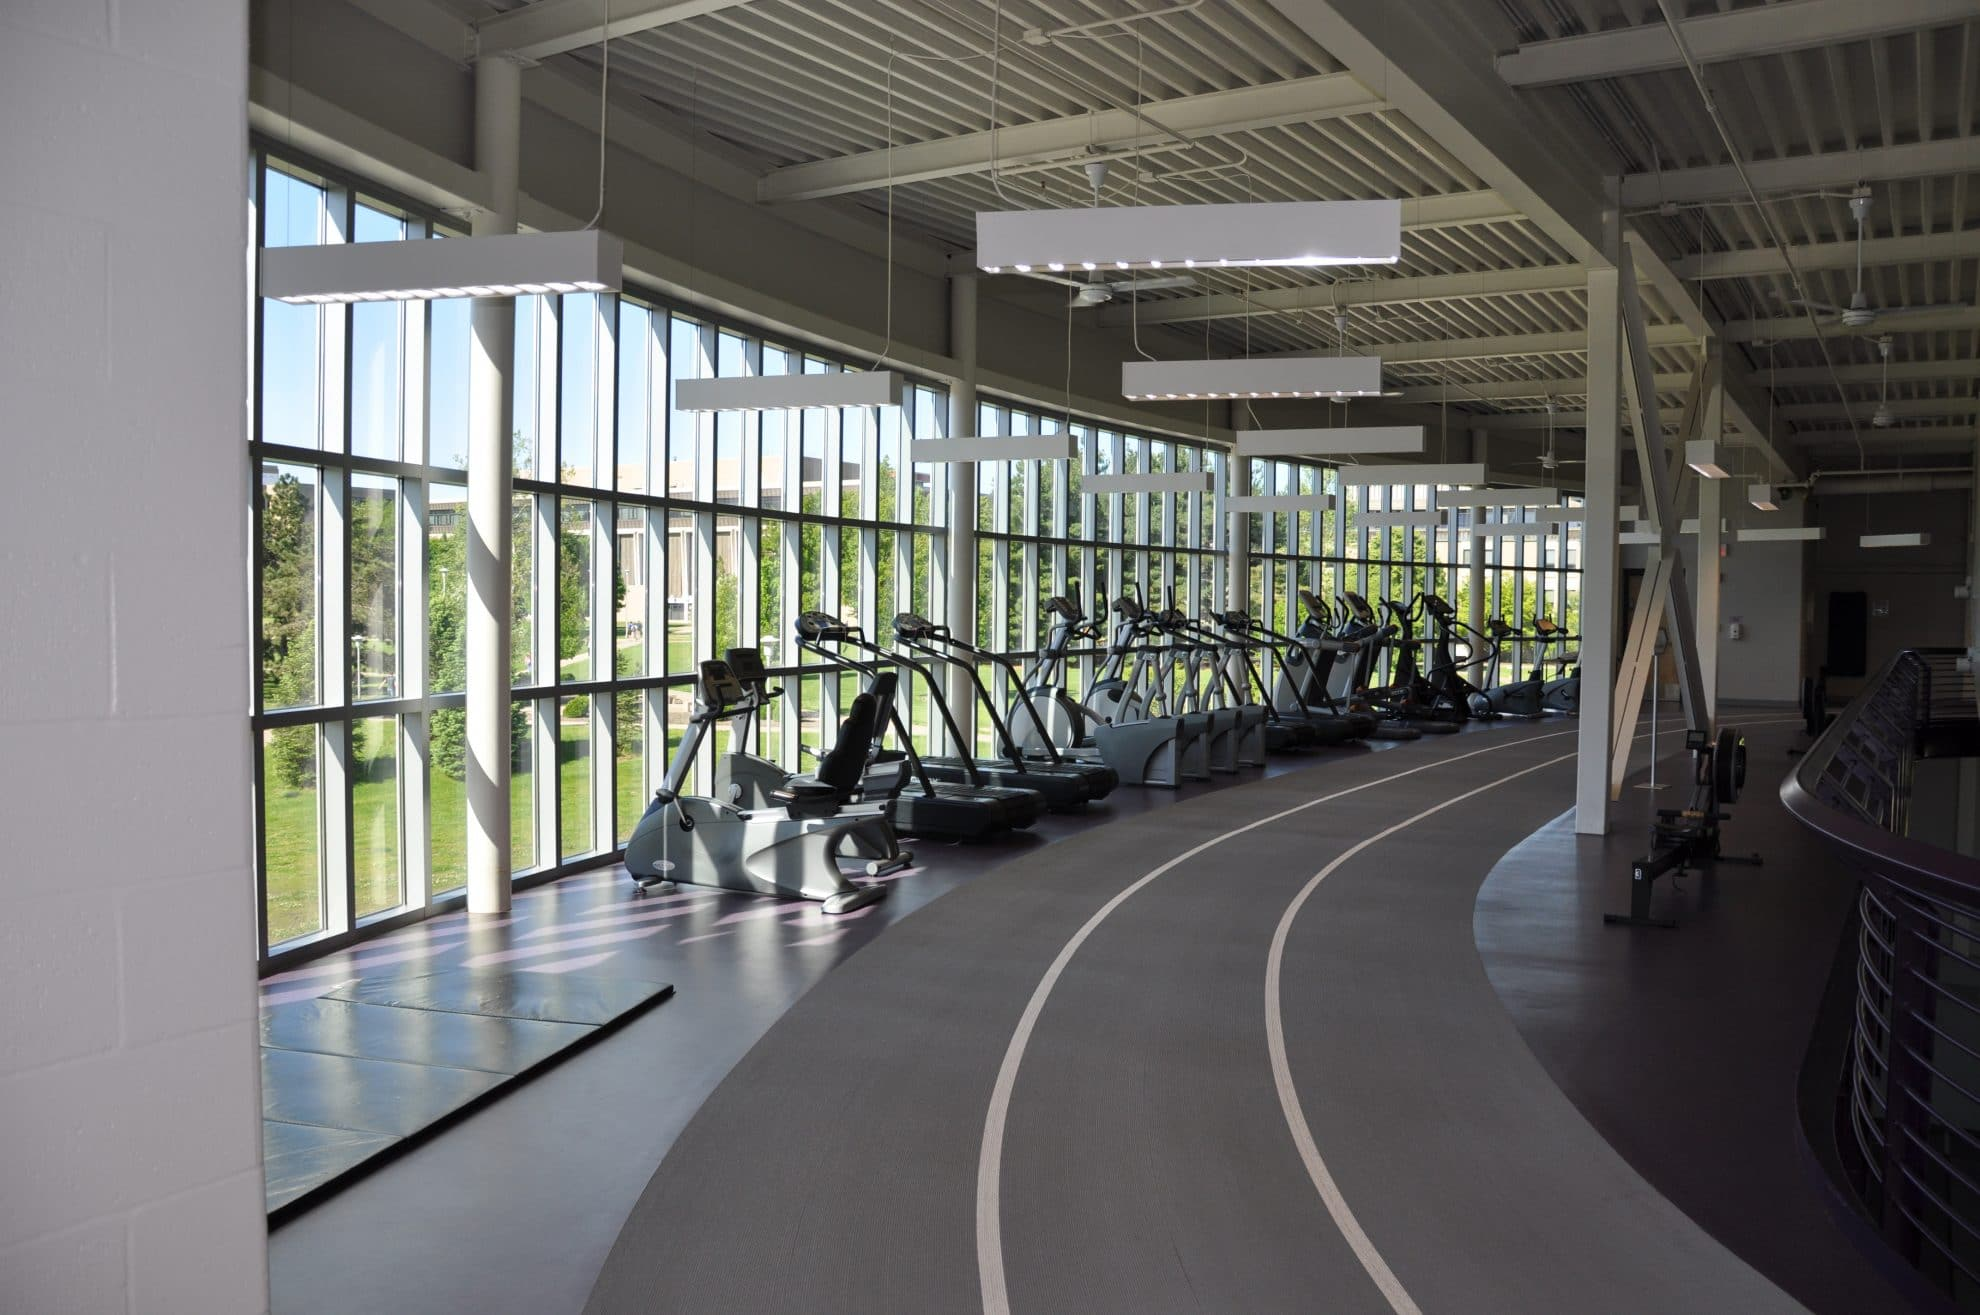 Workout equipment next to windows along track.